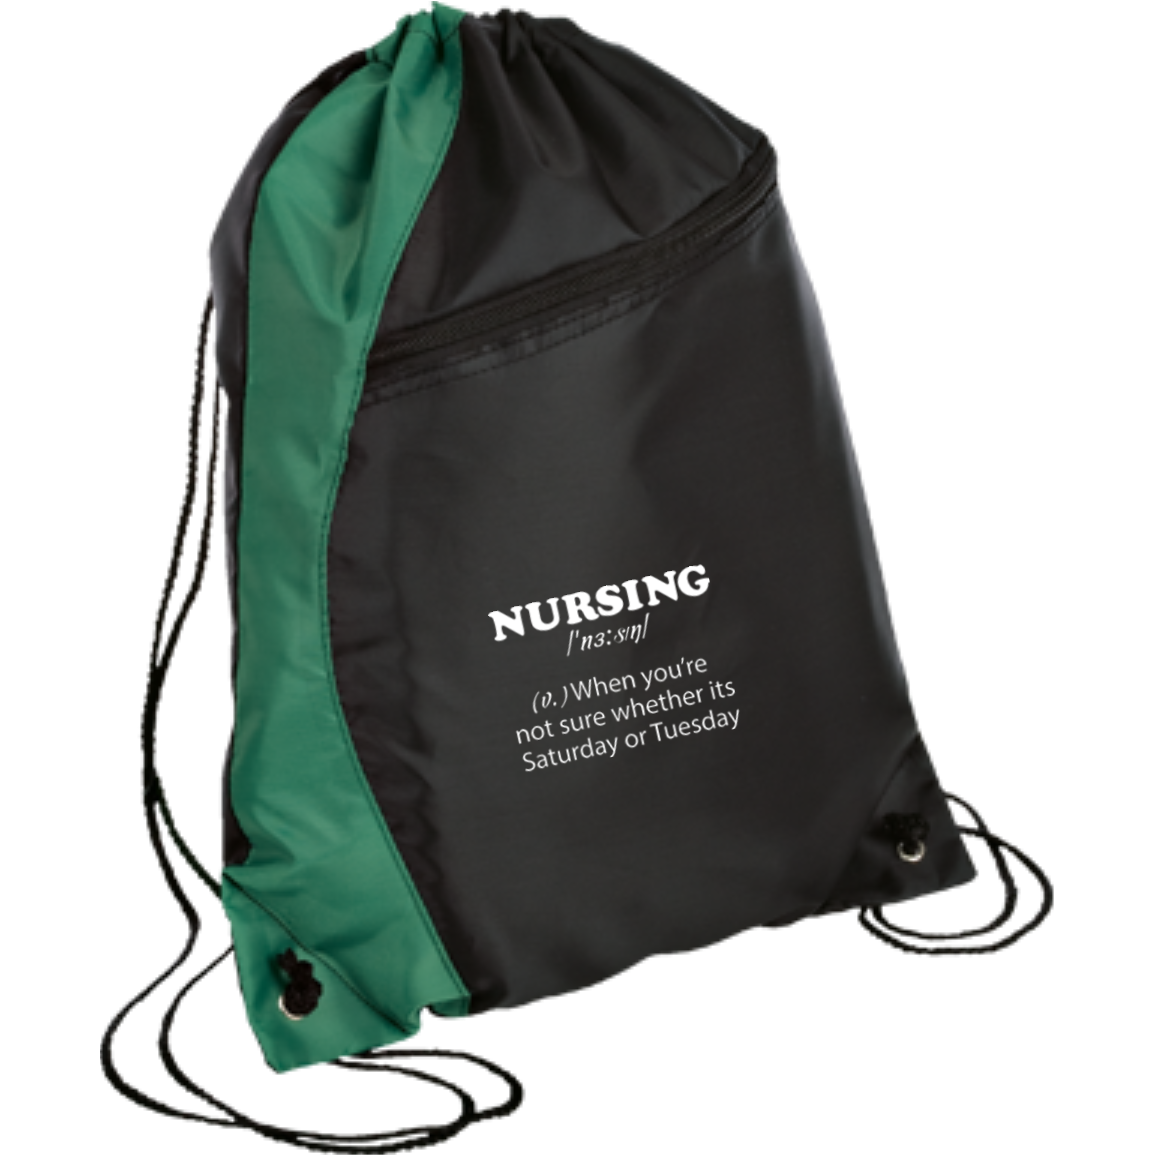 '' NURSING '' BAG (With images) Bags, Cat whiskers